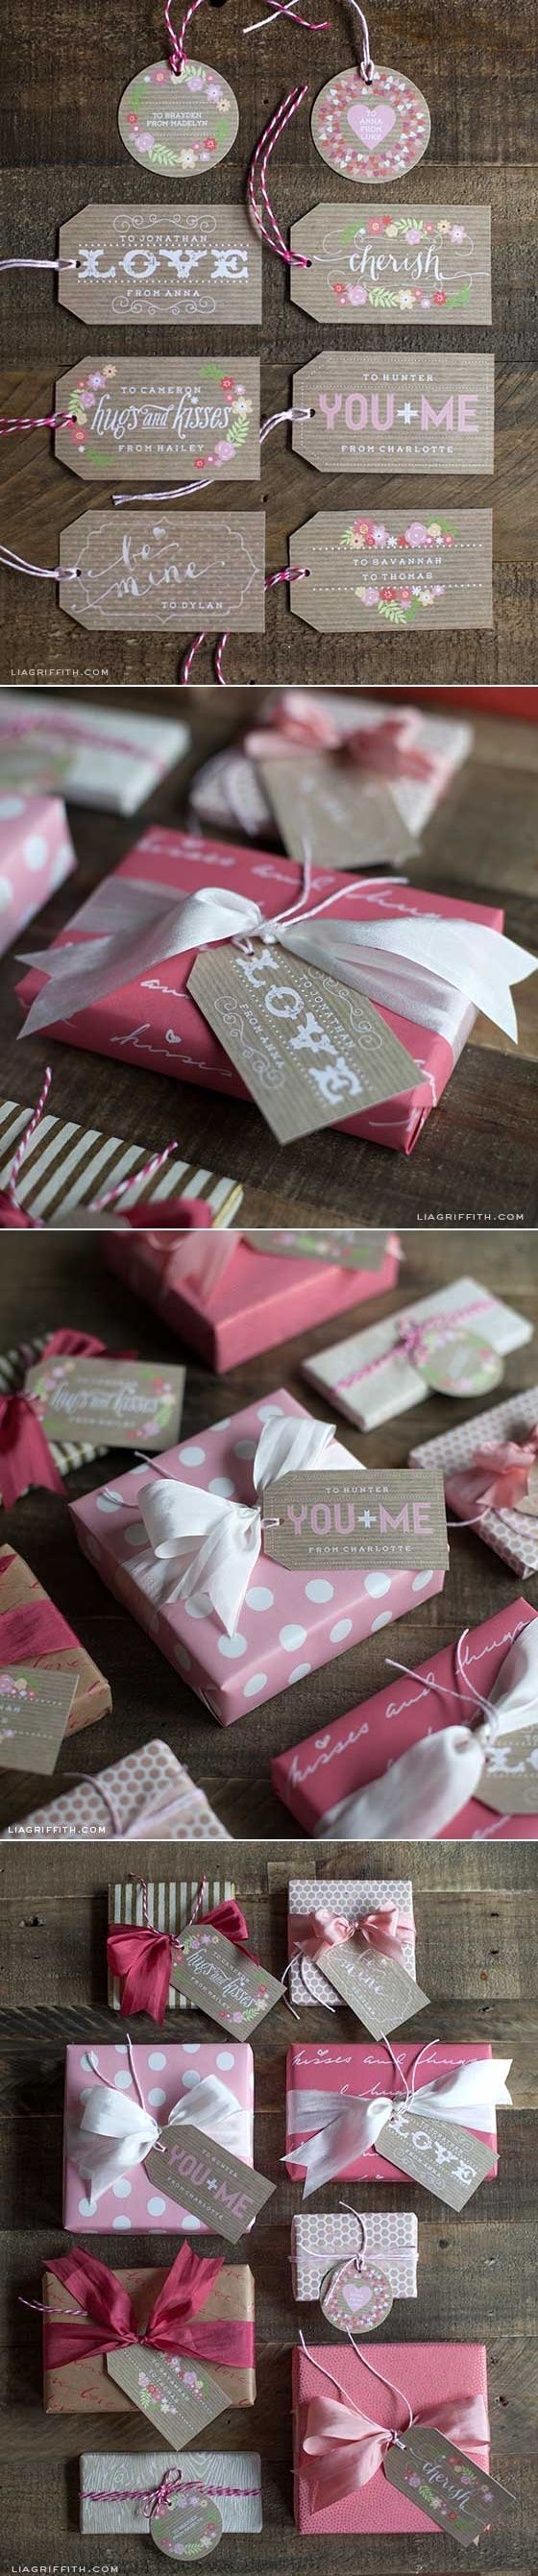 best 10 valentine day gifts ideas on pinterest diy valentines